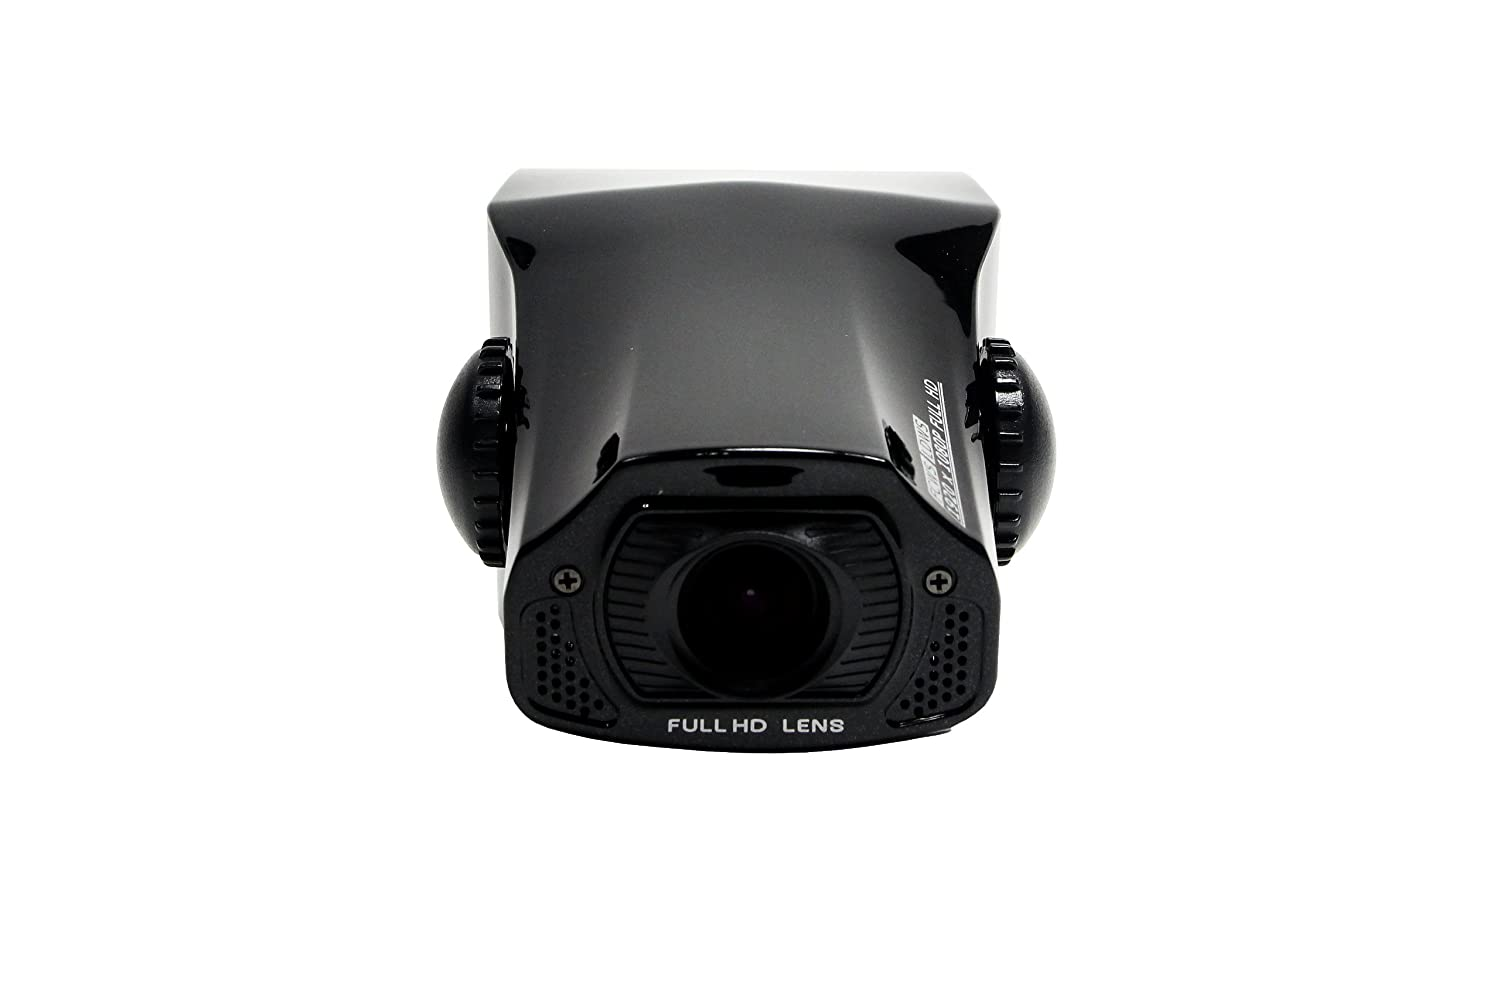 PAPAGO P1PRO-US P1 Pro Full HD 1080P Wide Viewing Angle Dashcam 2.4-Inch LCD White PAPAGO Inc.